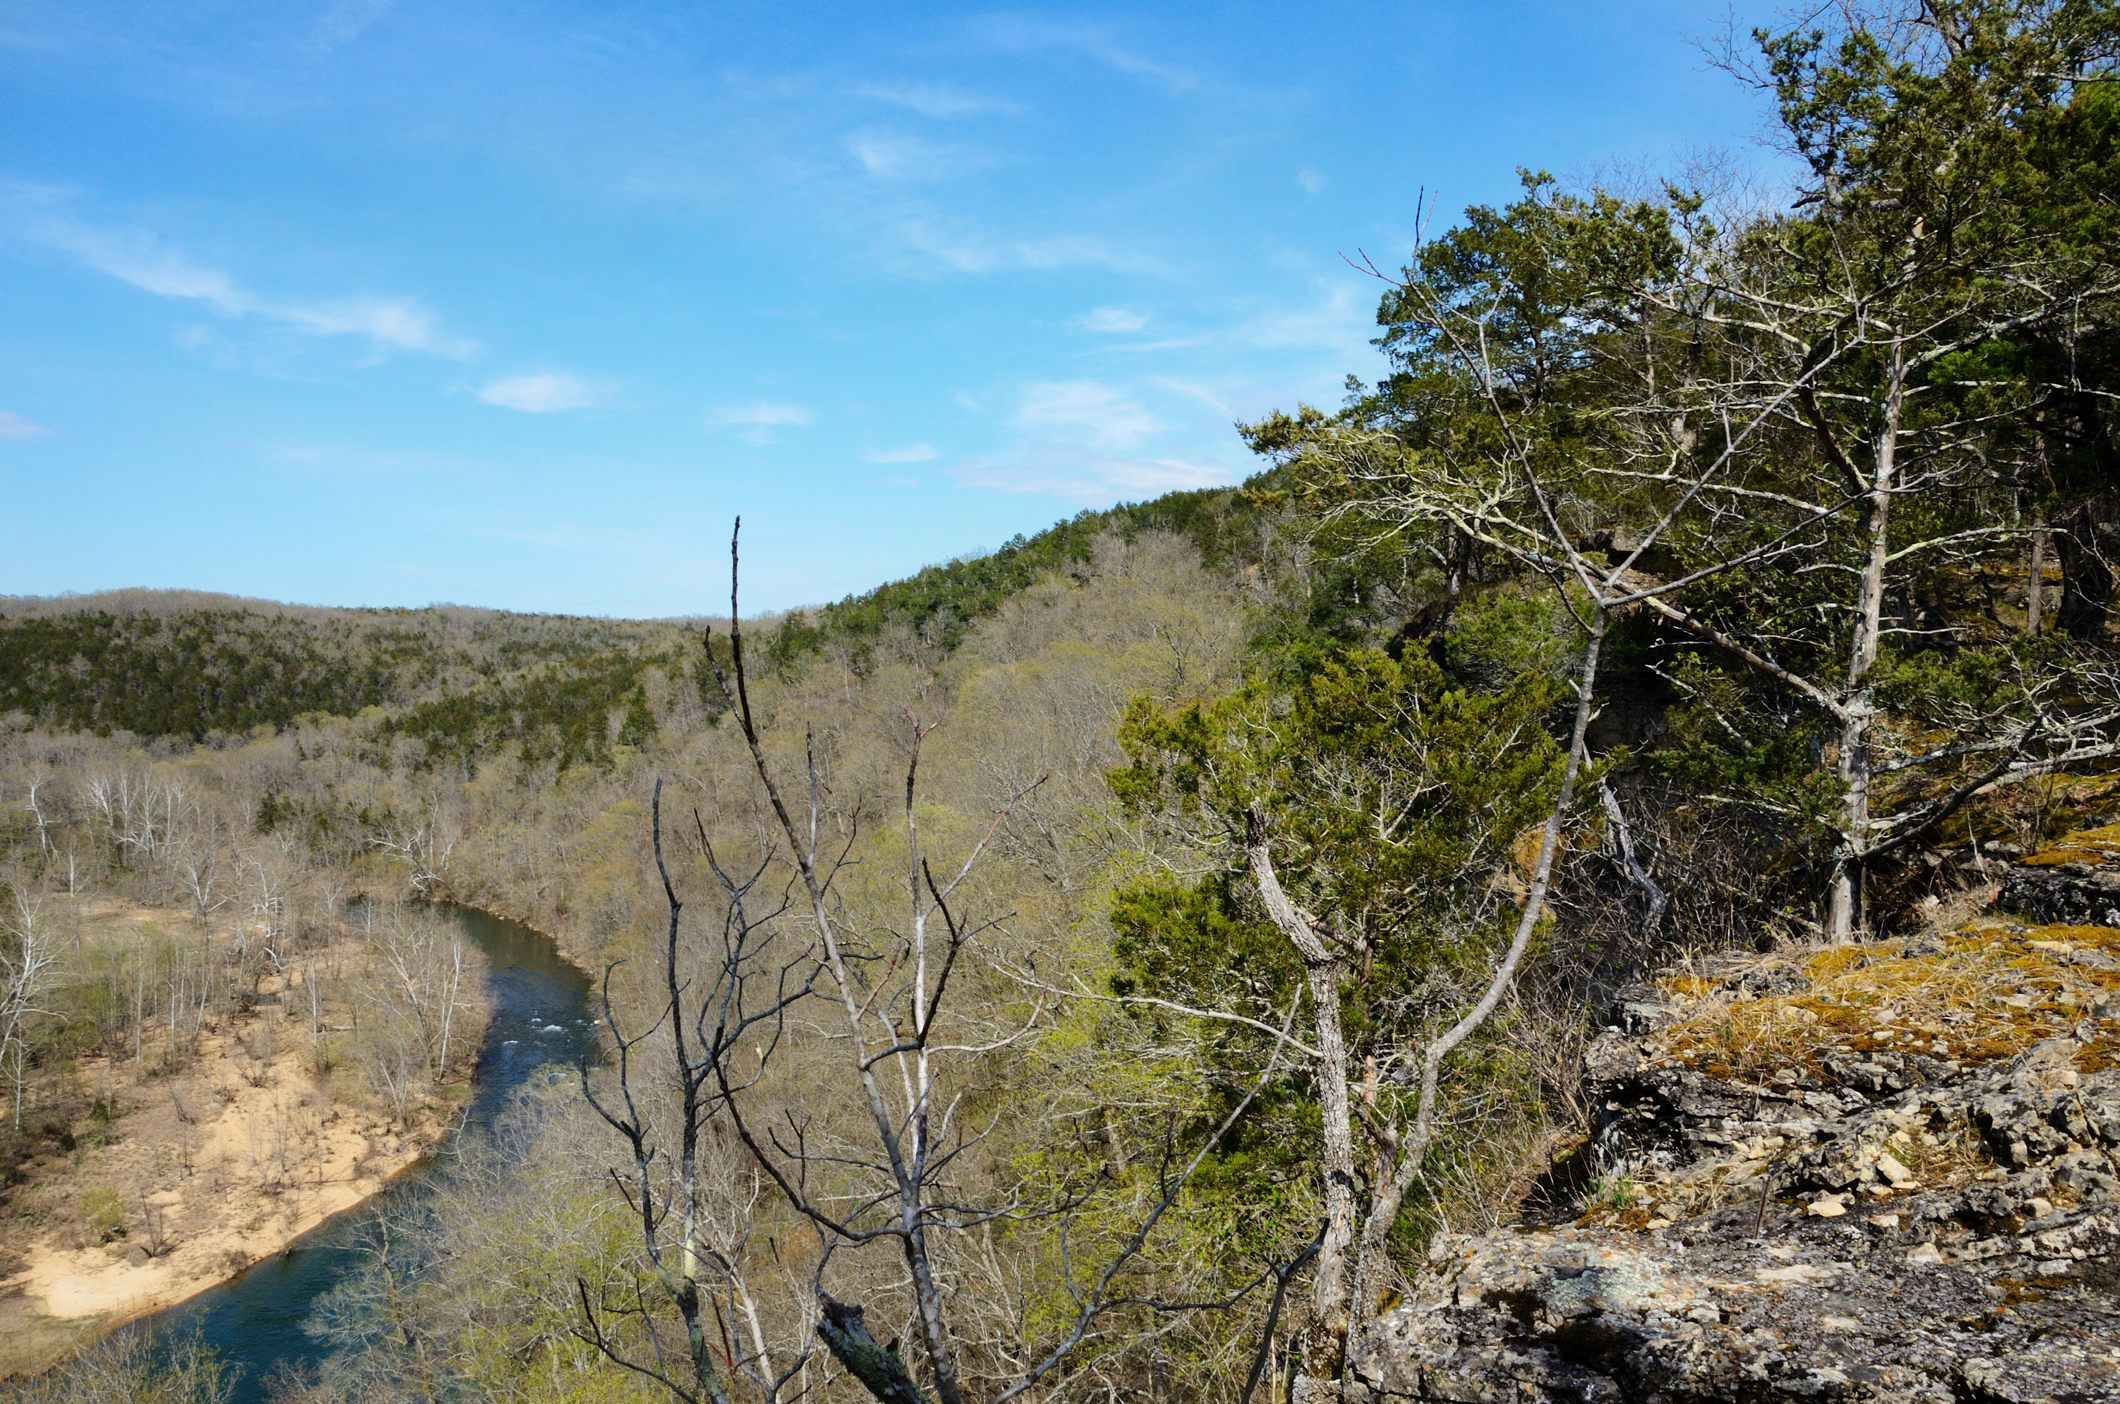 Backpacking in the Ozarks this weekend, we camped at the top of this bluff